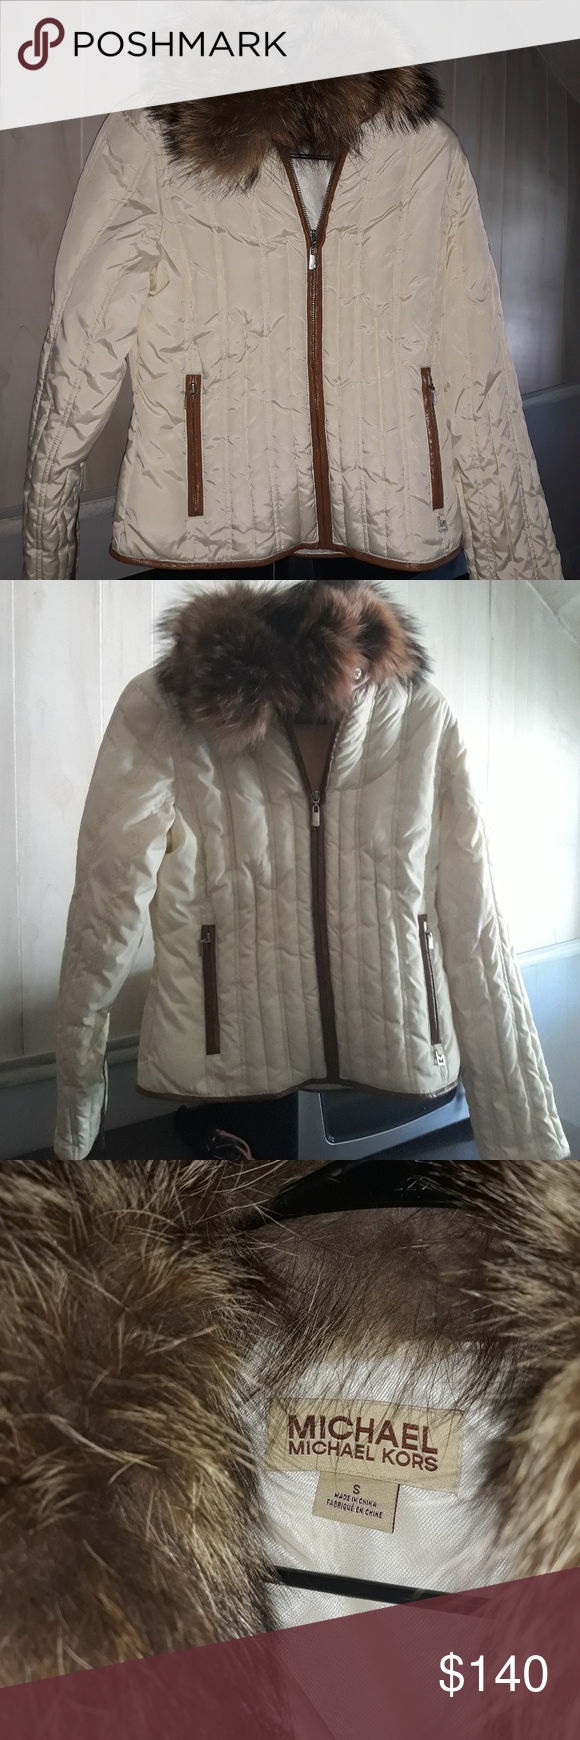 Michael Kors Down Puffer Jacket Brand New Never Worn Mk Down Puffer Jacket Size Womens Small This Beauty Is An Ivory Cream Clothes Design Fashion Tips Puffer [ 1740 x 580 Pixel ]